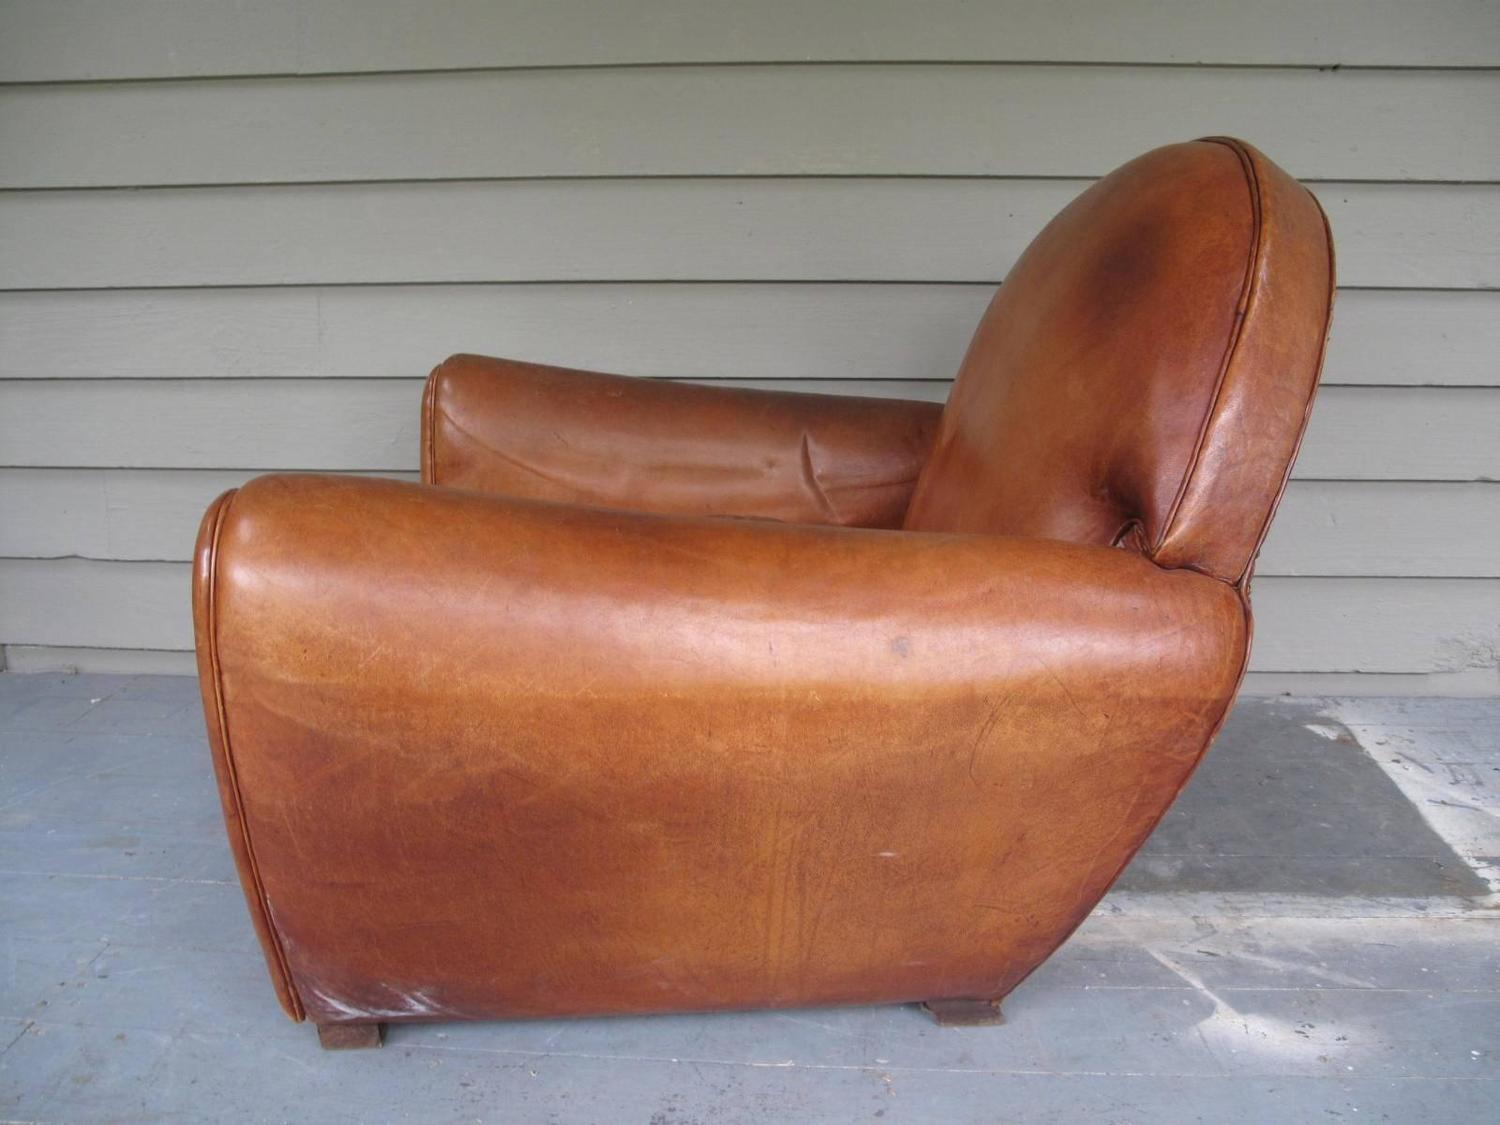 art deco club chairs leather lounge at target monumental chair 1stdibs